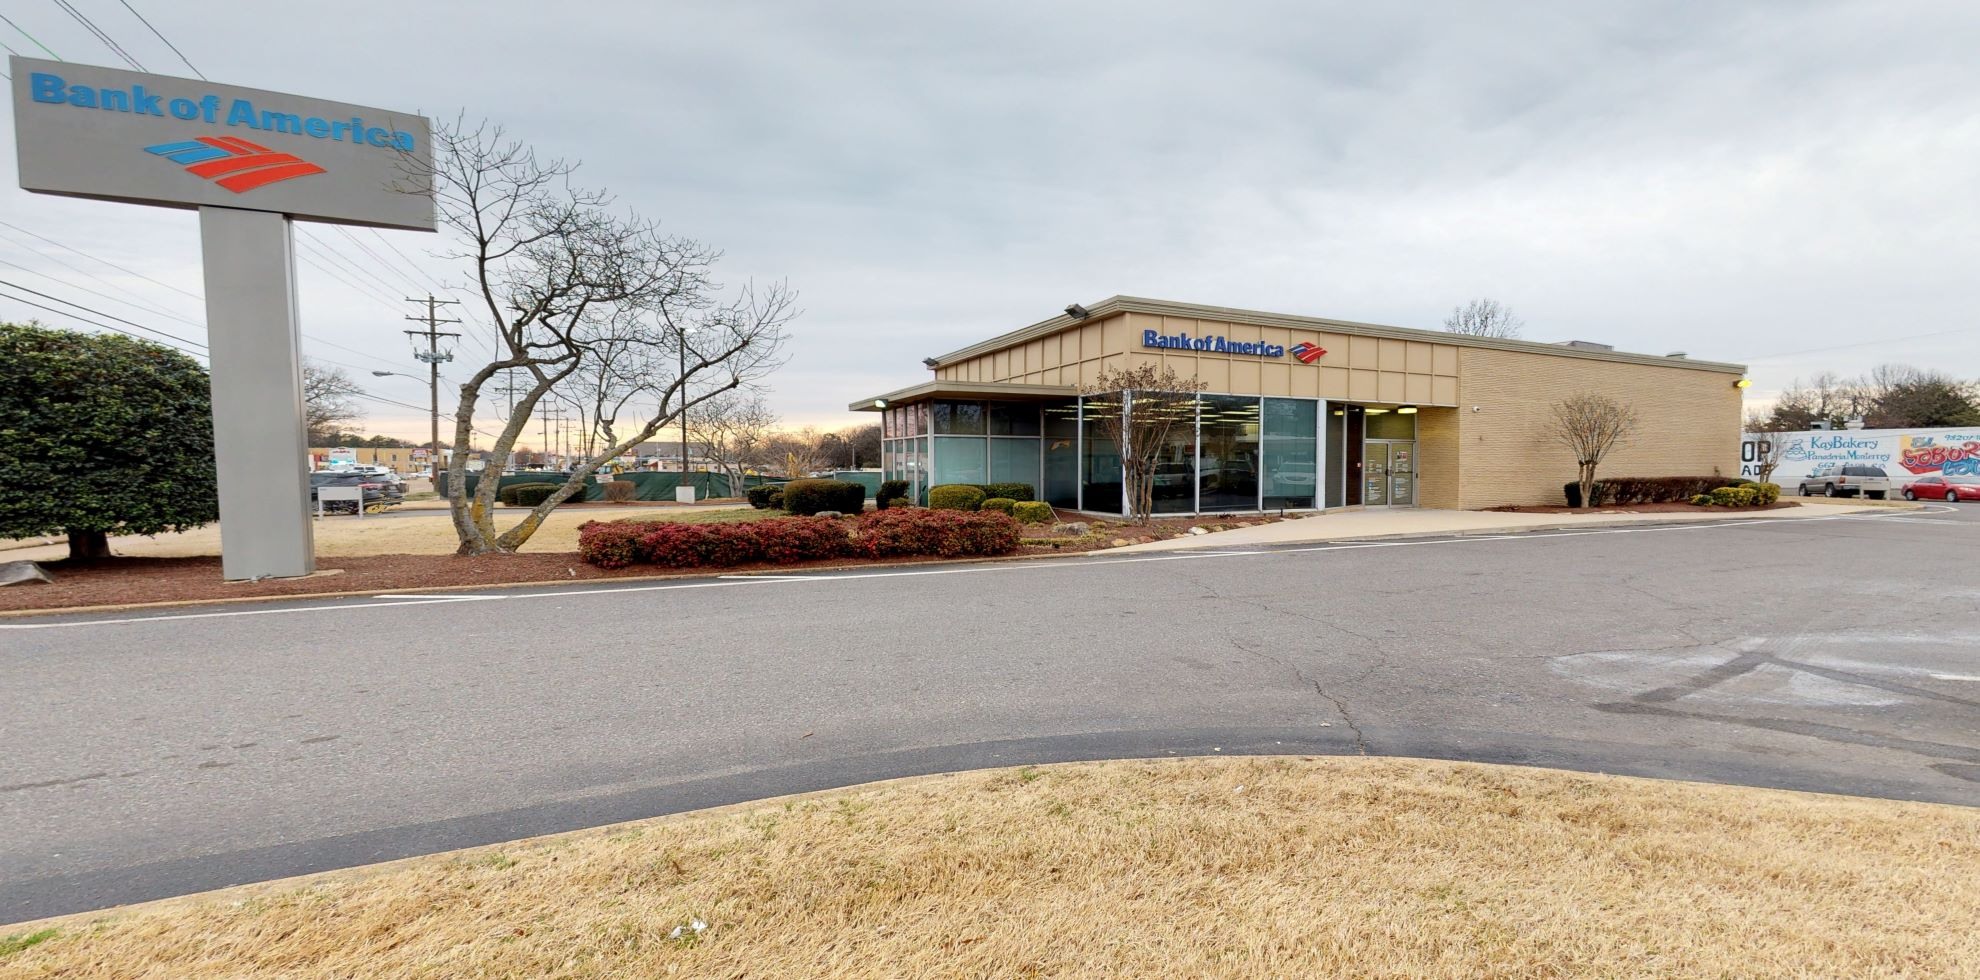 Bank of America financial center with drive-thru ATM   4750 Summer Ave, Memphis, TN 38122